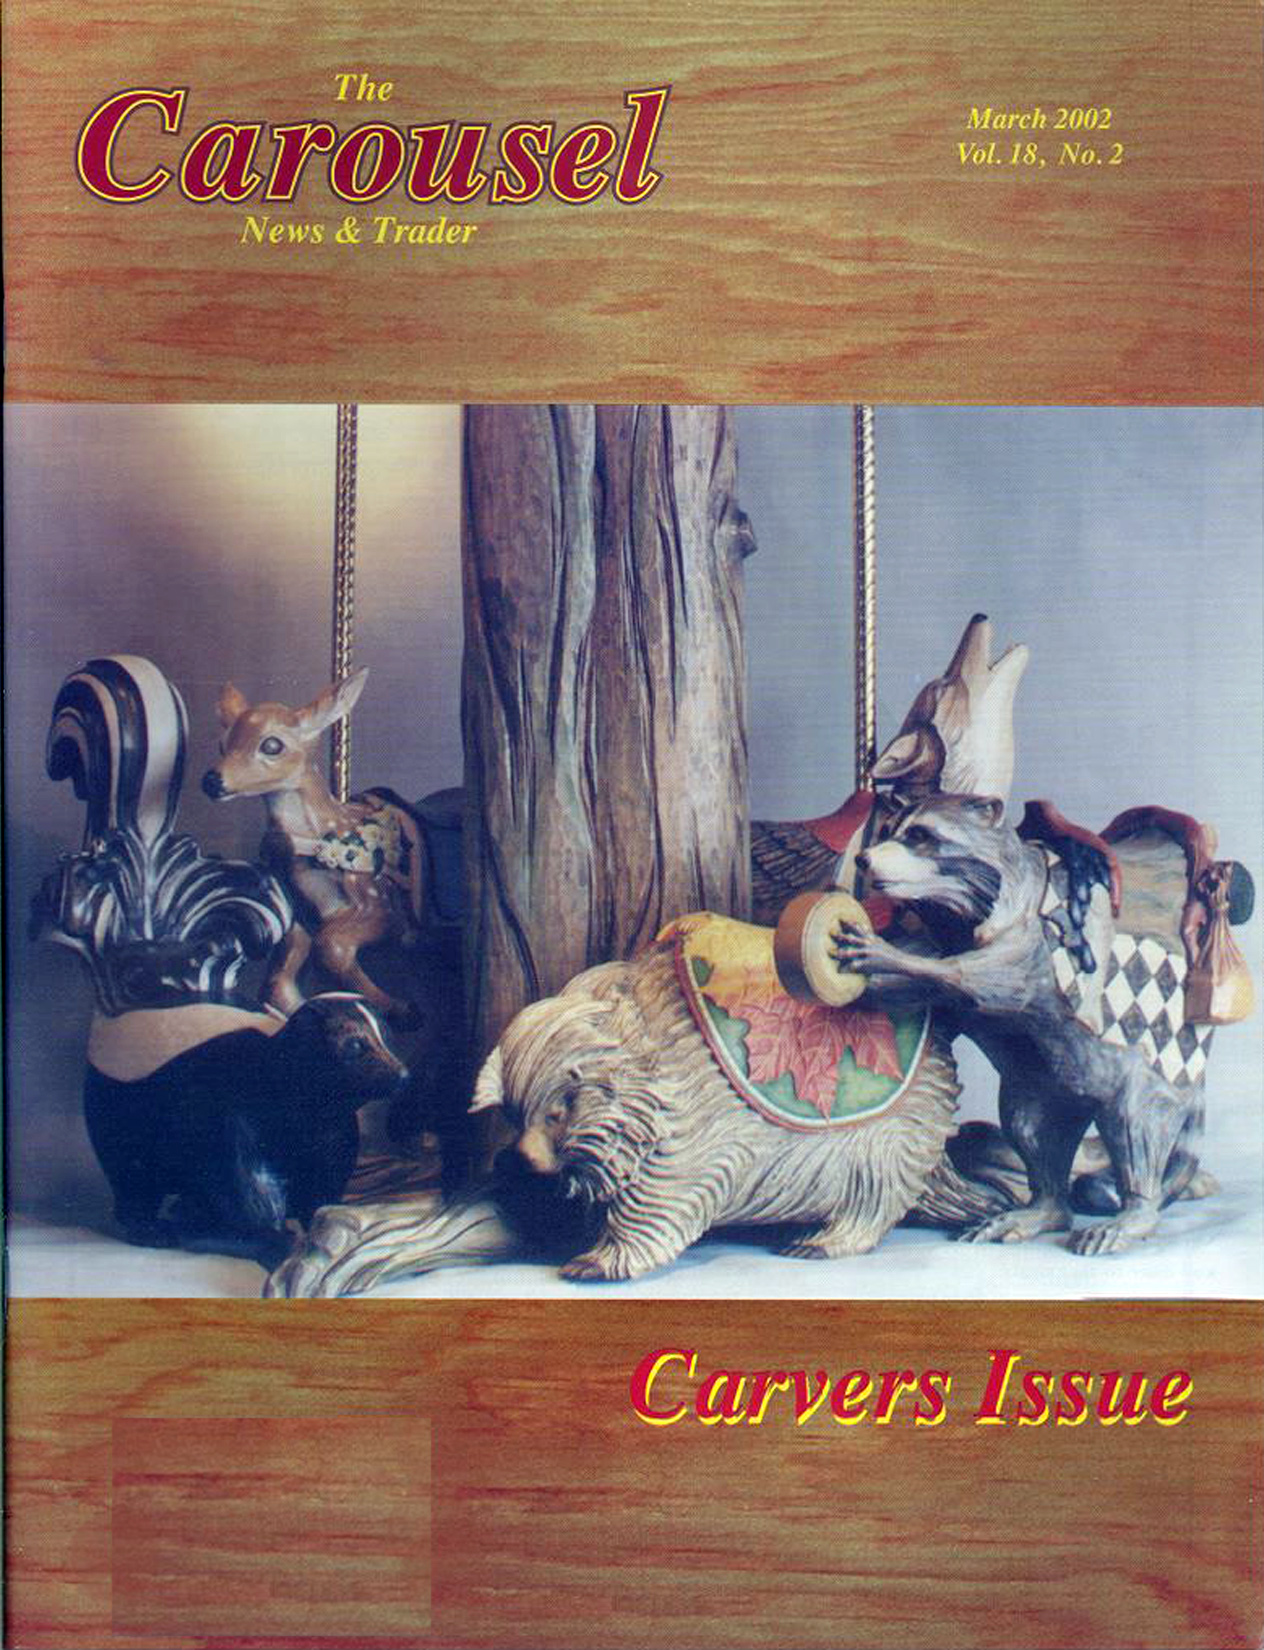 cnt_03_2002-Legends-of-the-Forest-carousel-critters